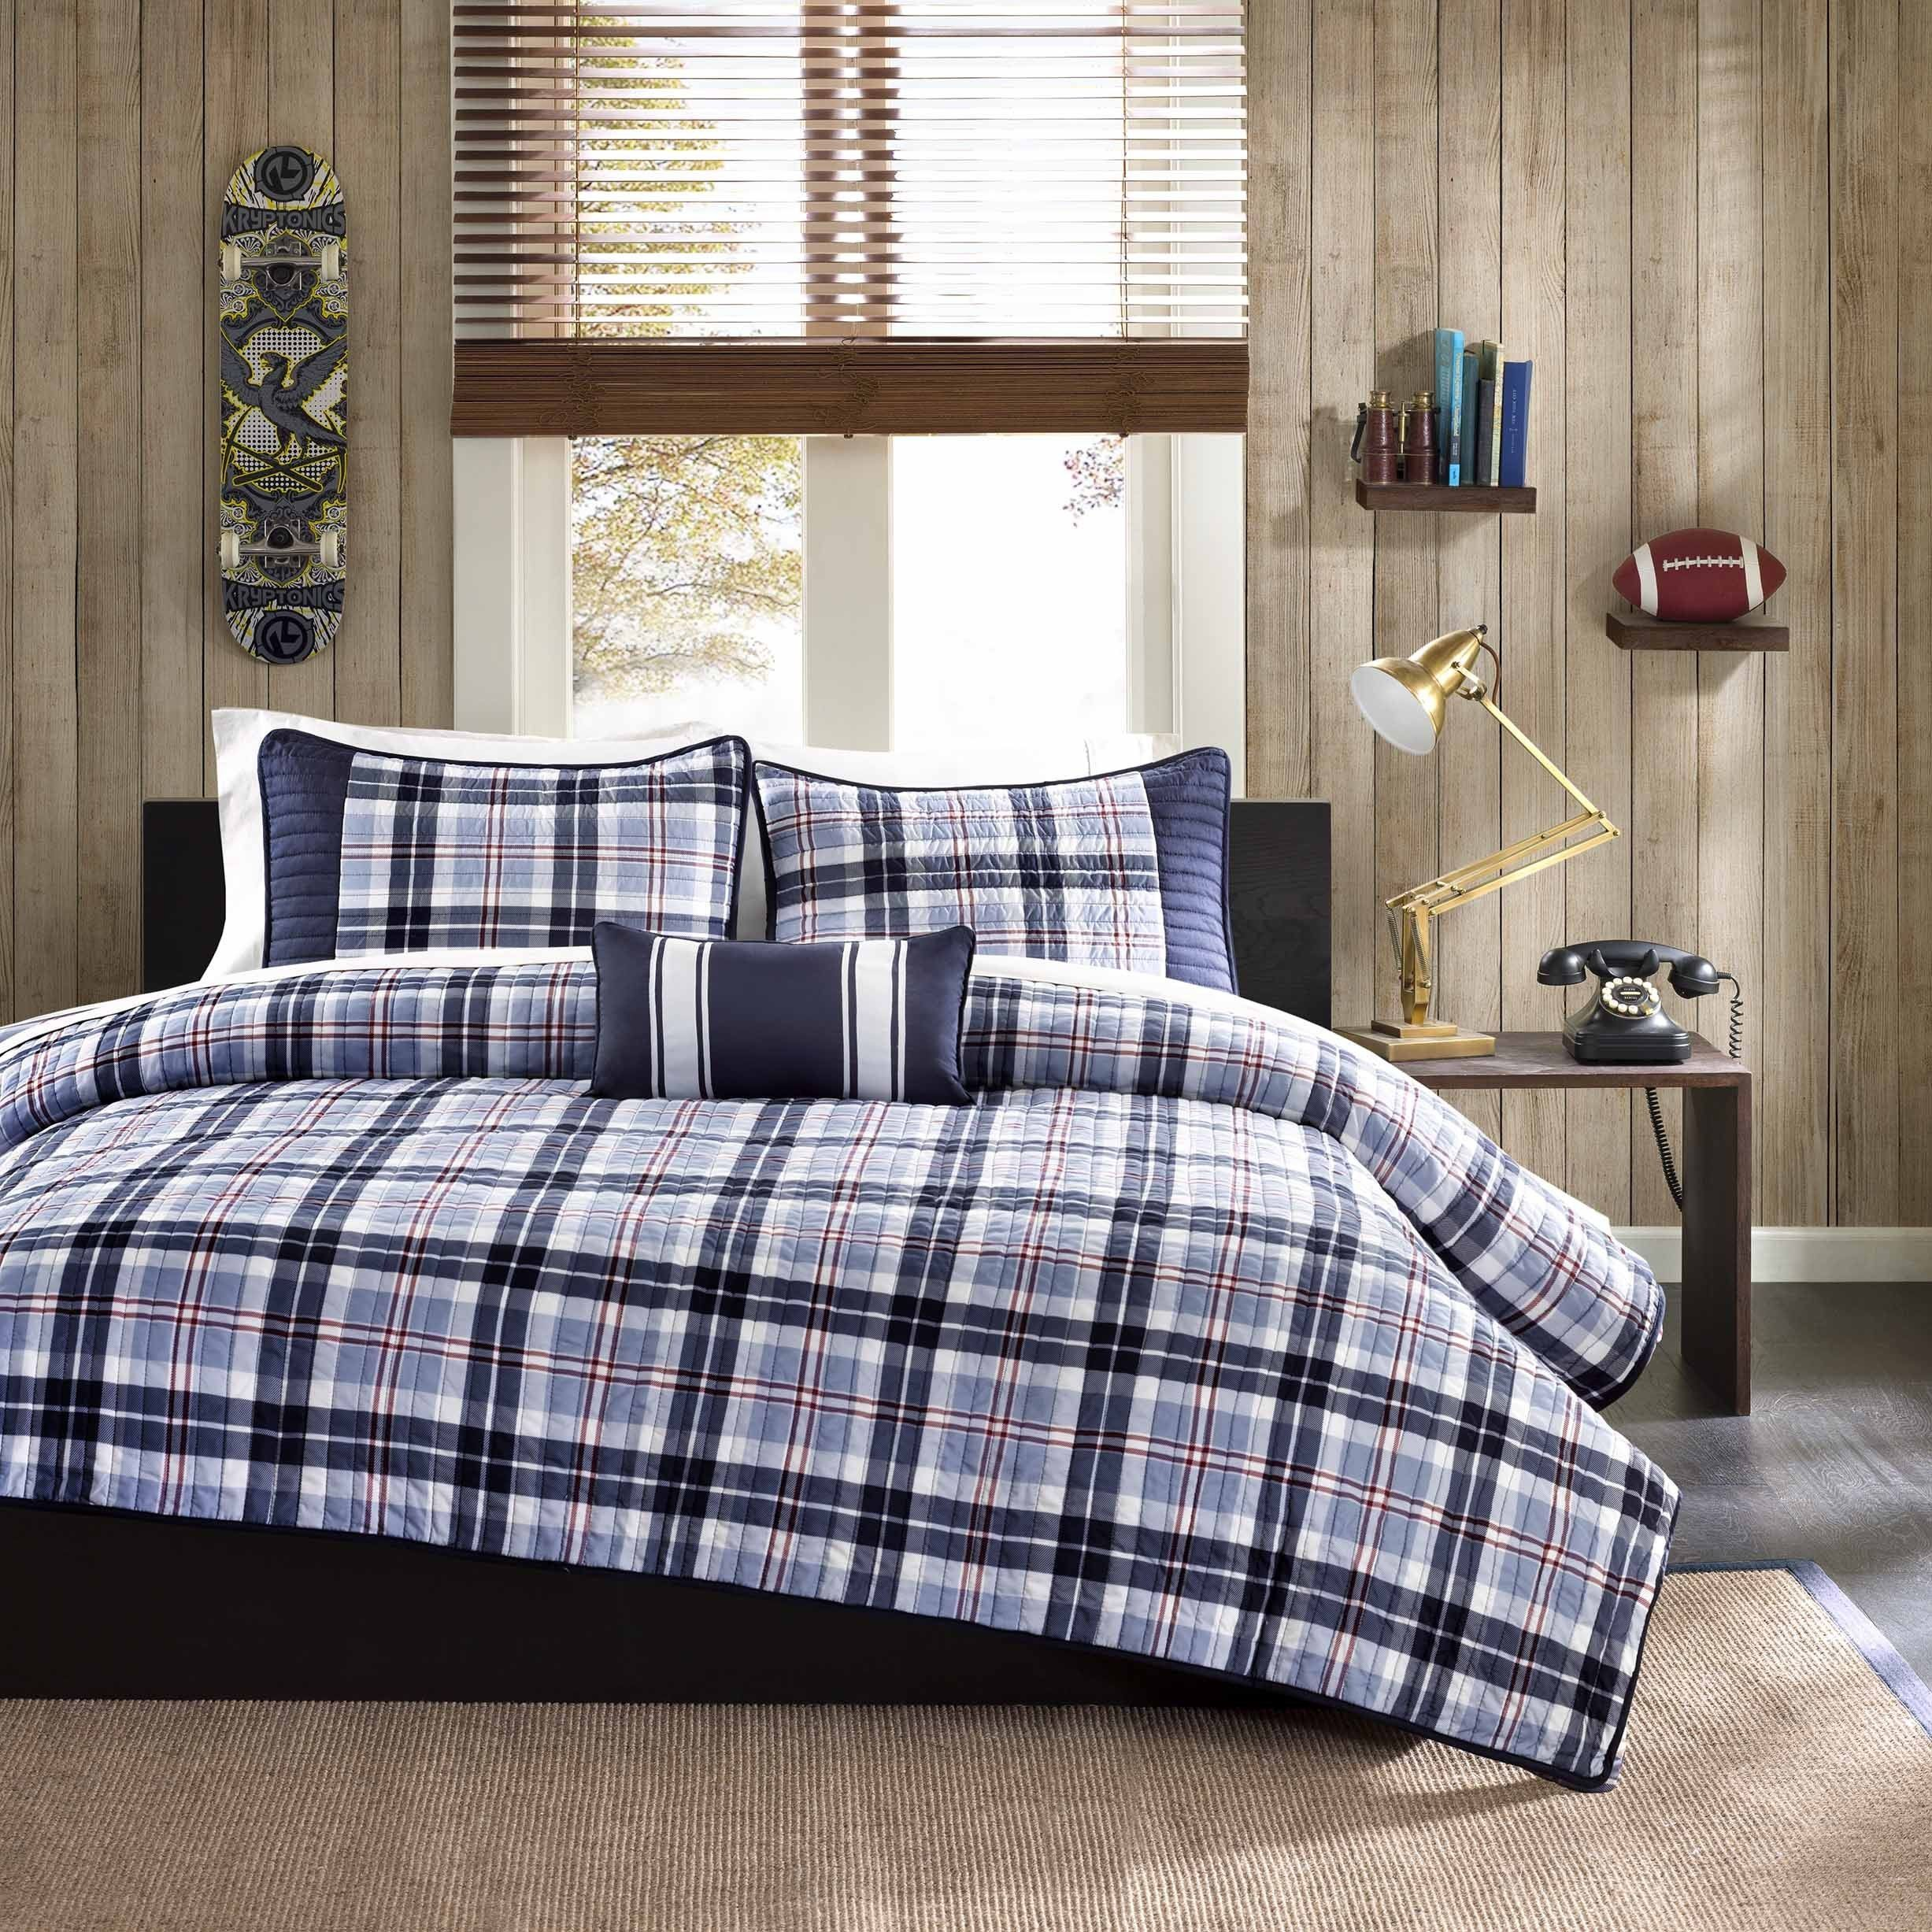 Plaid teen bedding apologise, but